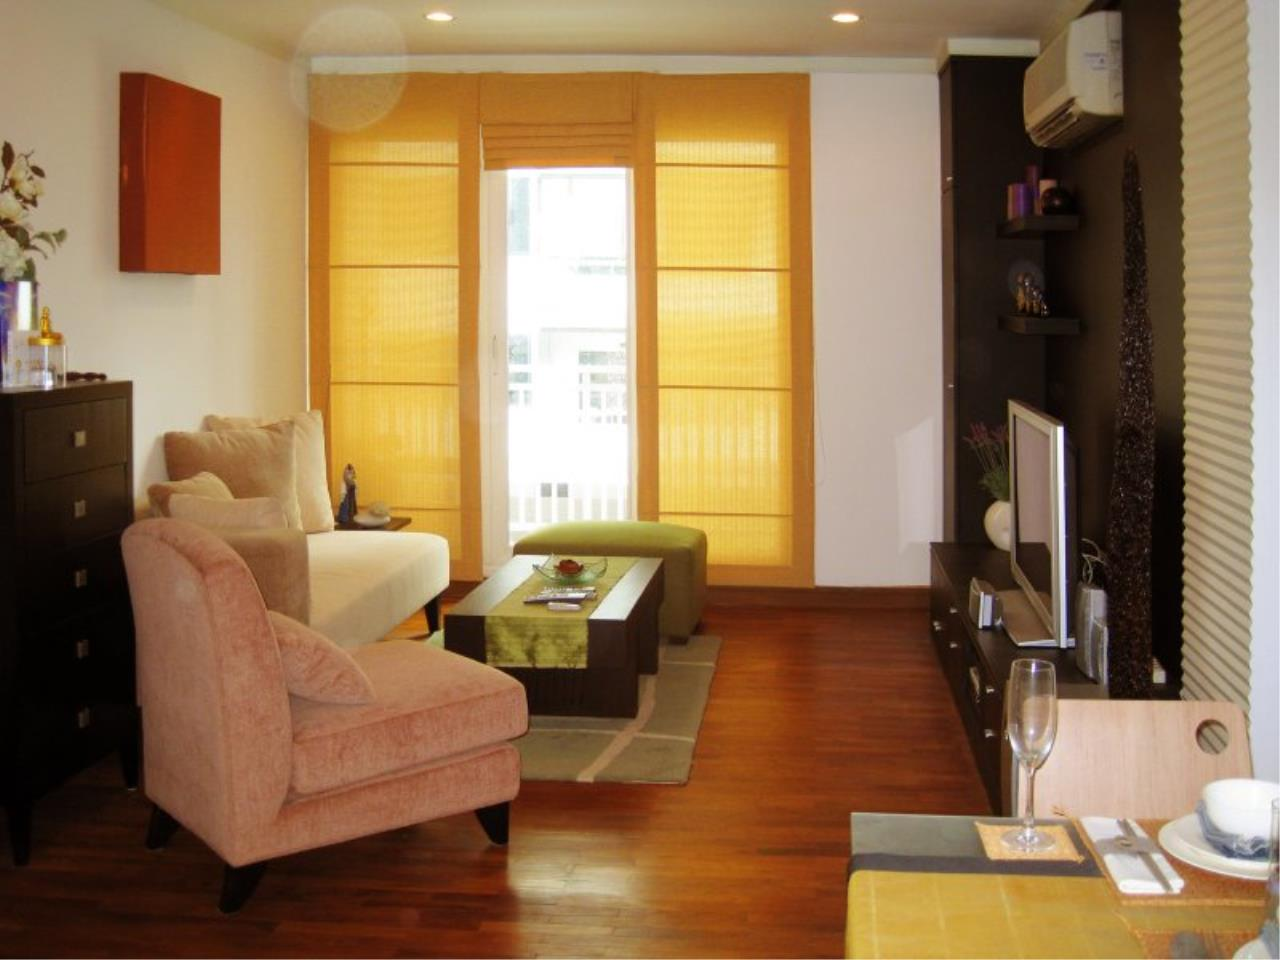 Piri Property Agency's Bright 2 Bedrooms in the Baan Siri Condo for rent  1